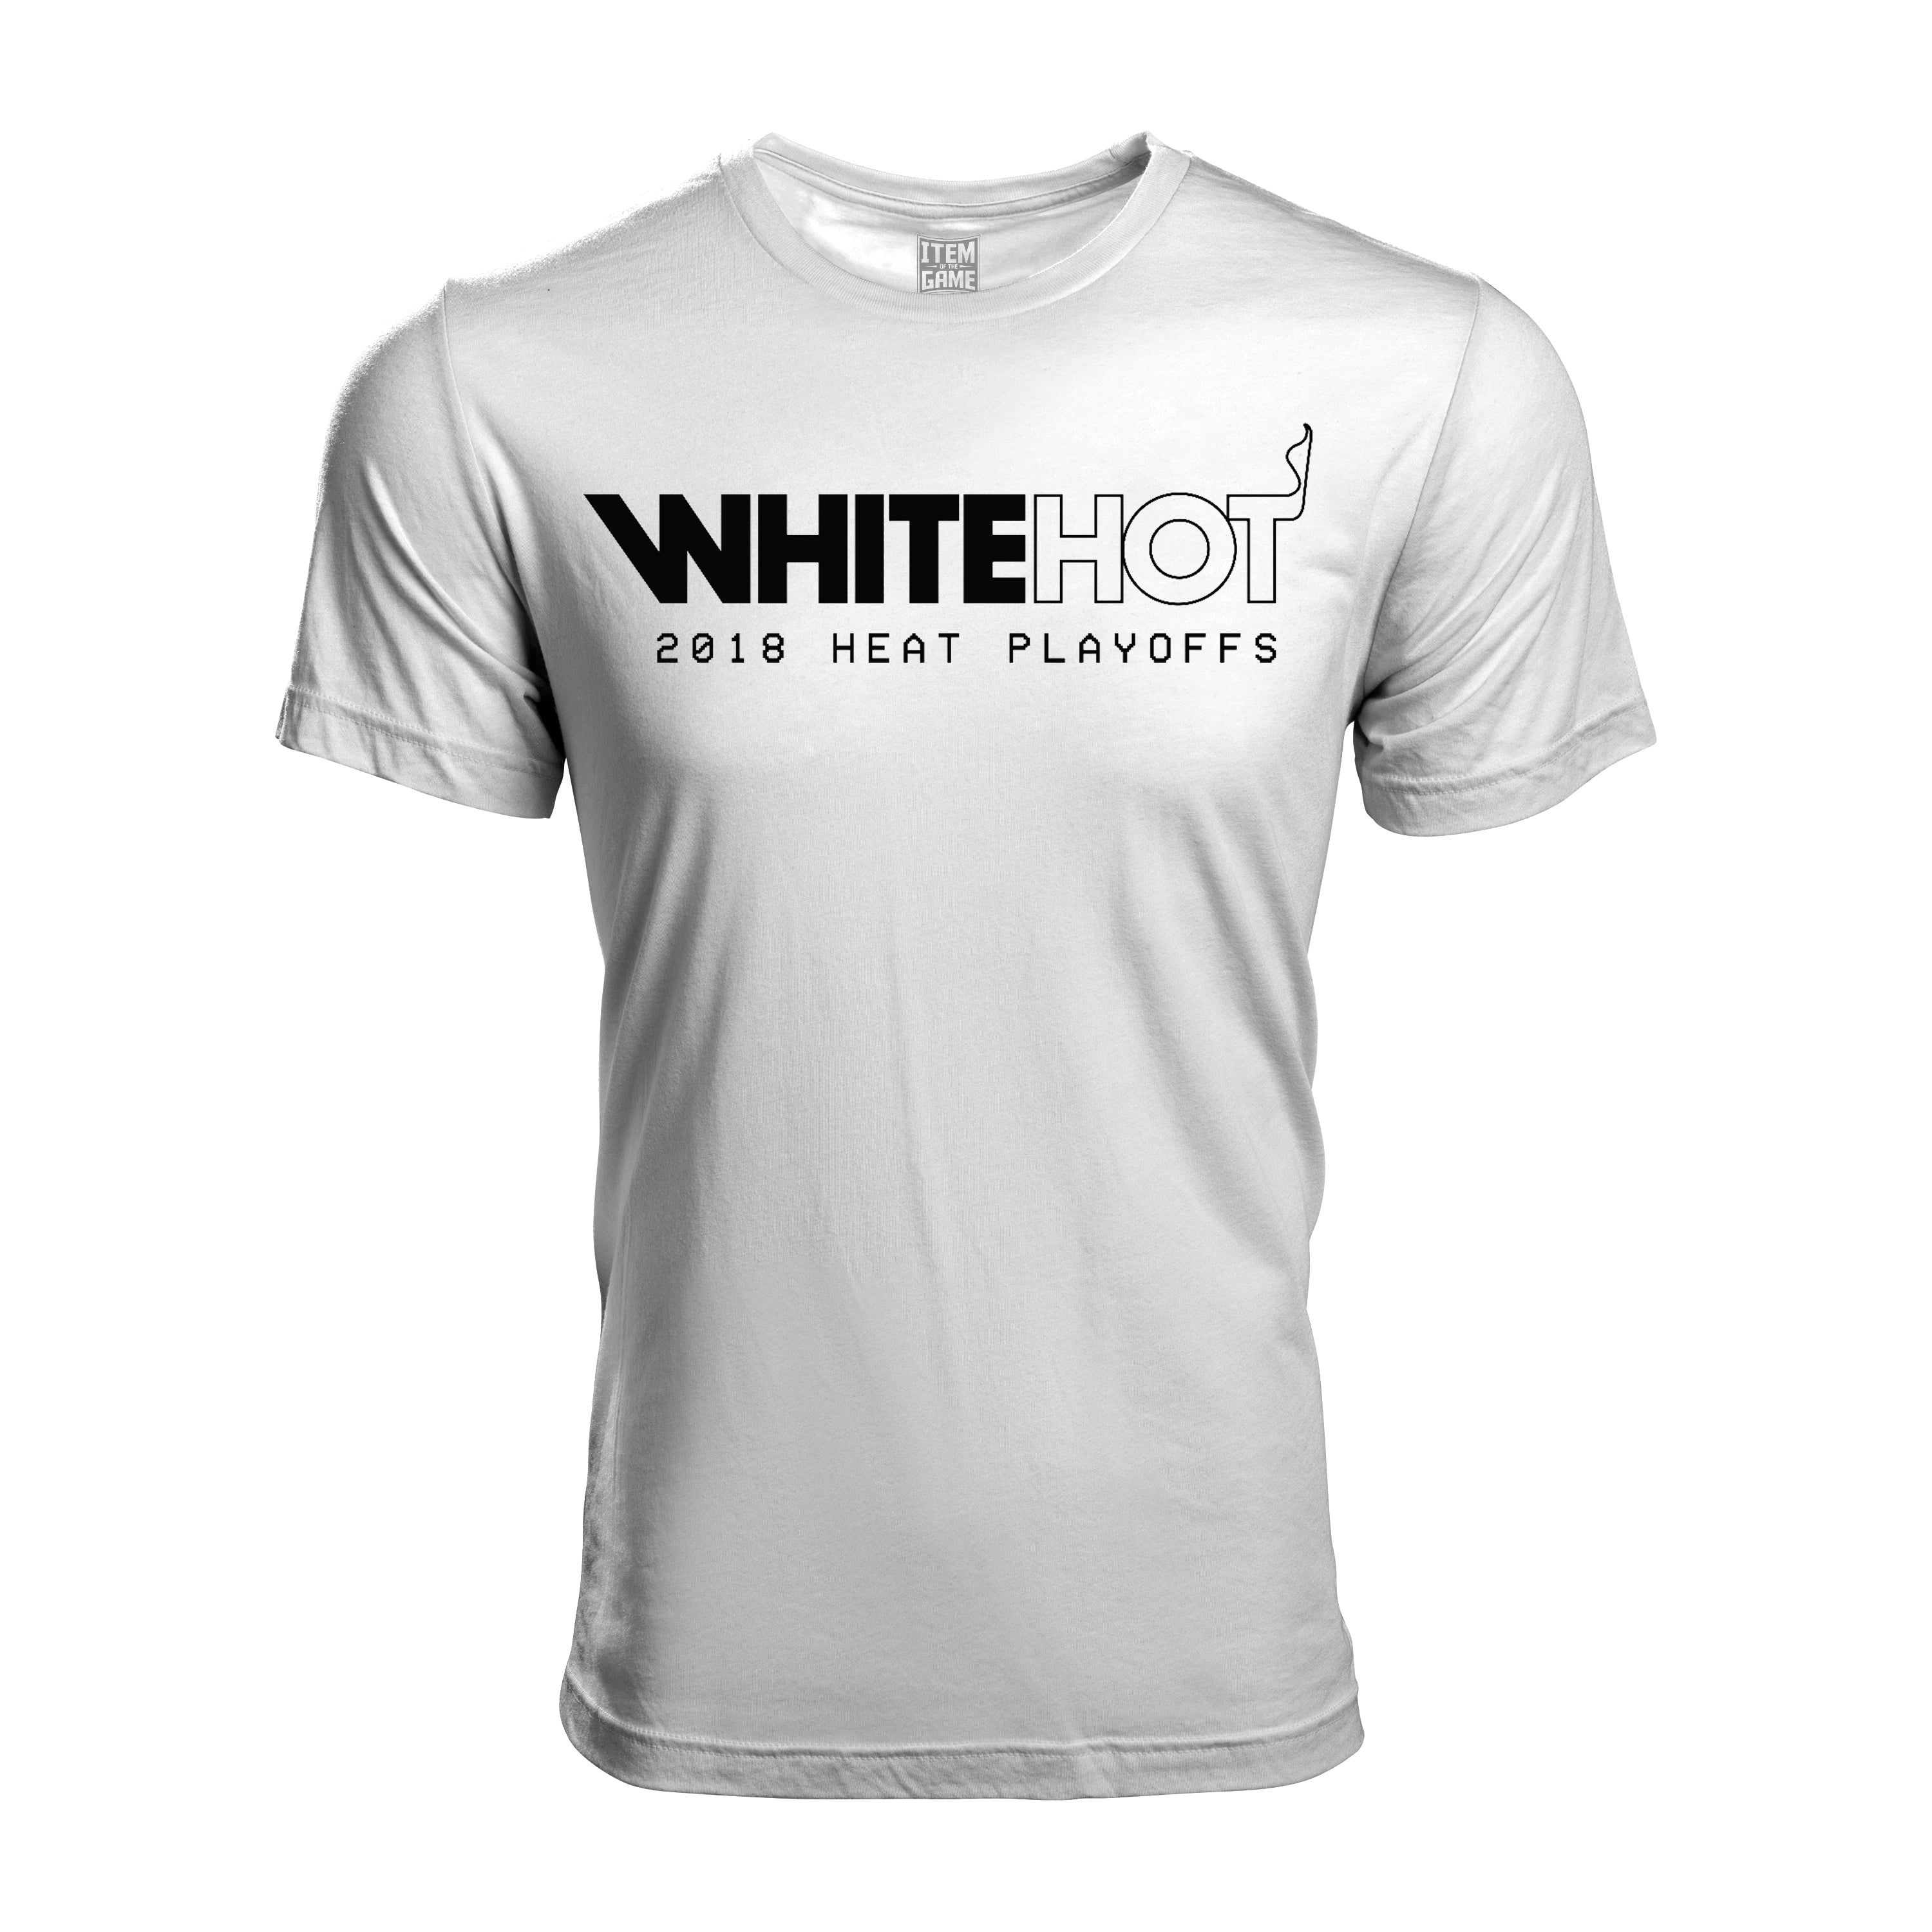 brand new a3f44 e7548 White Hot Playoff Tee